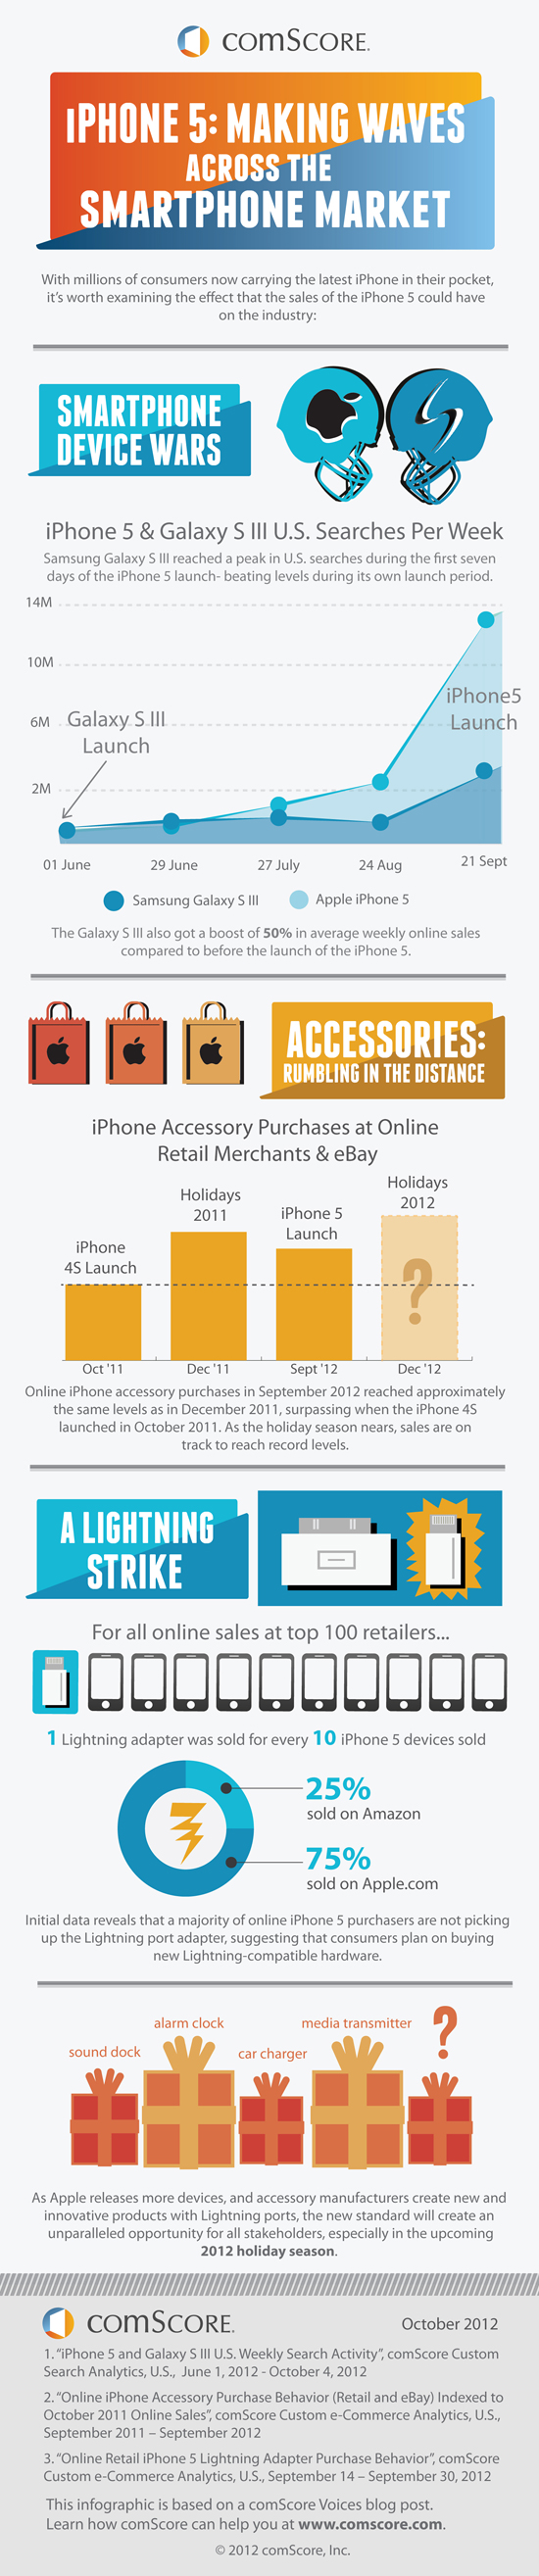 The iPhone Effect How the iPhone 5 is Making Waves through the Smartphone Market